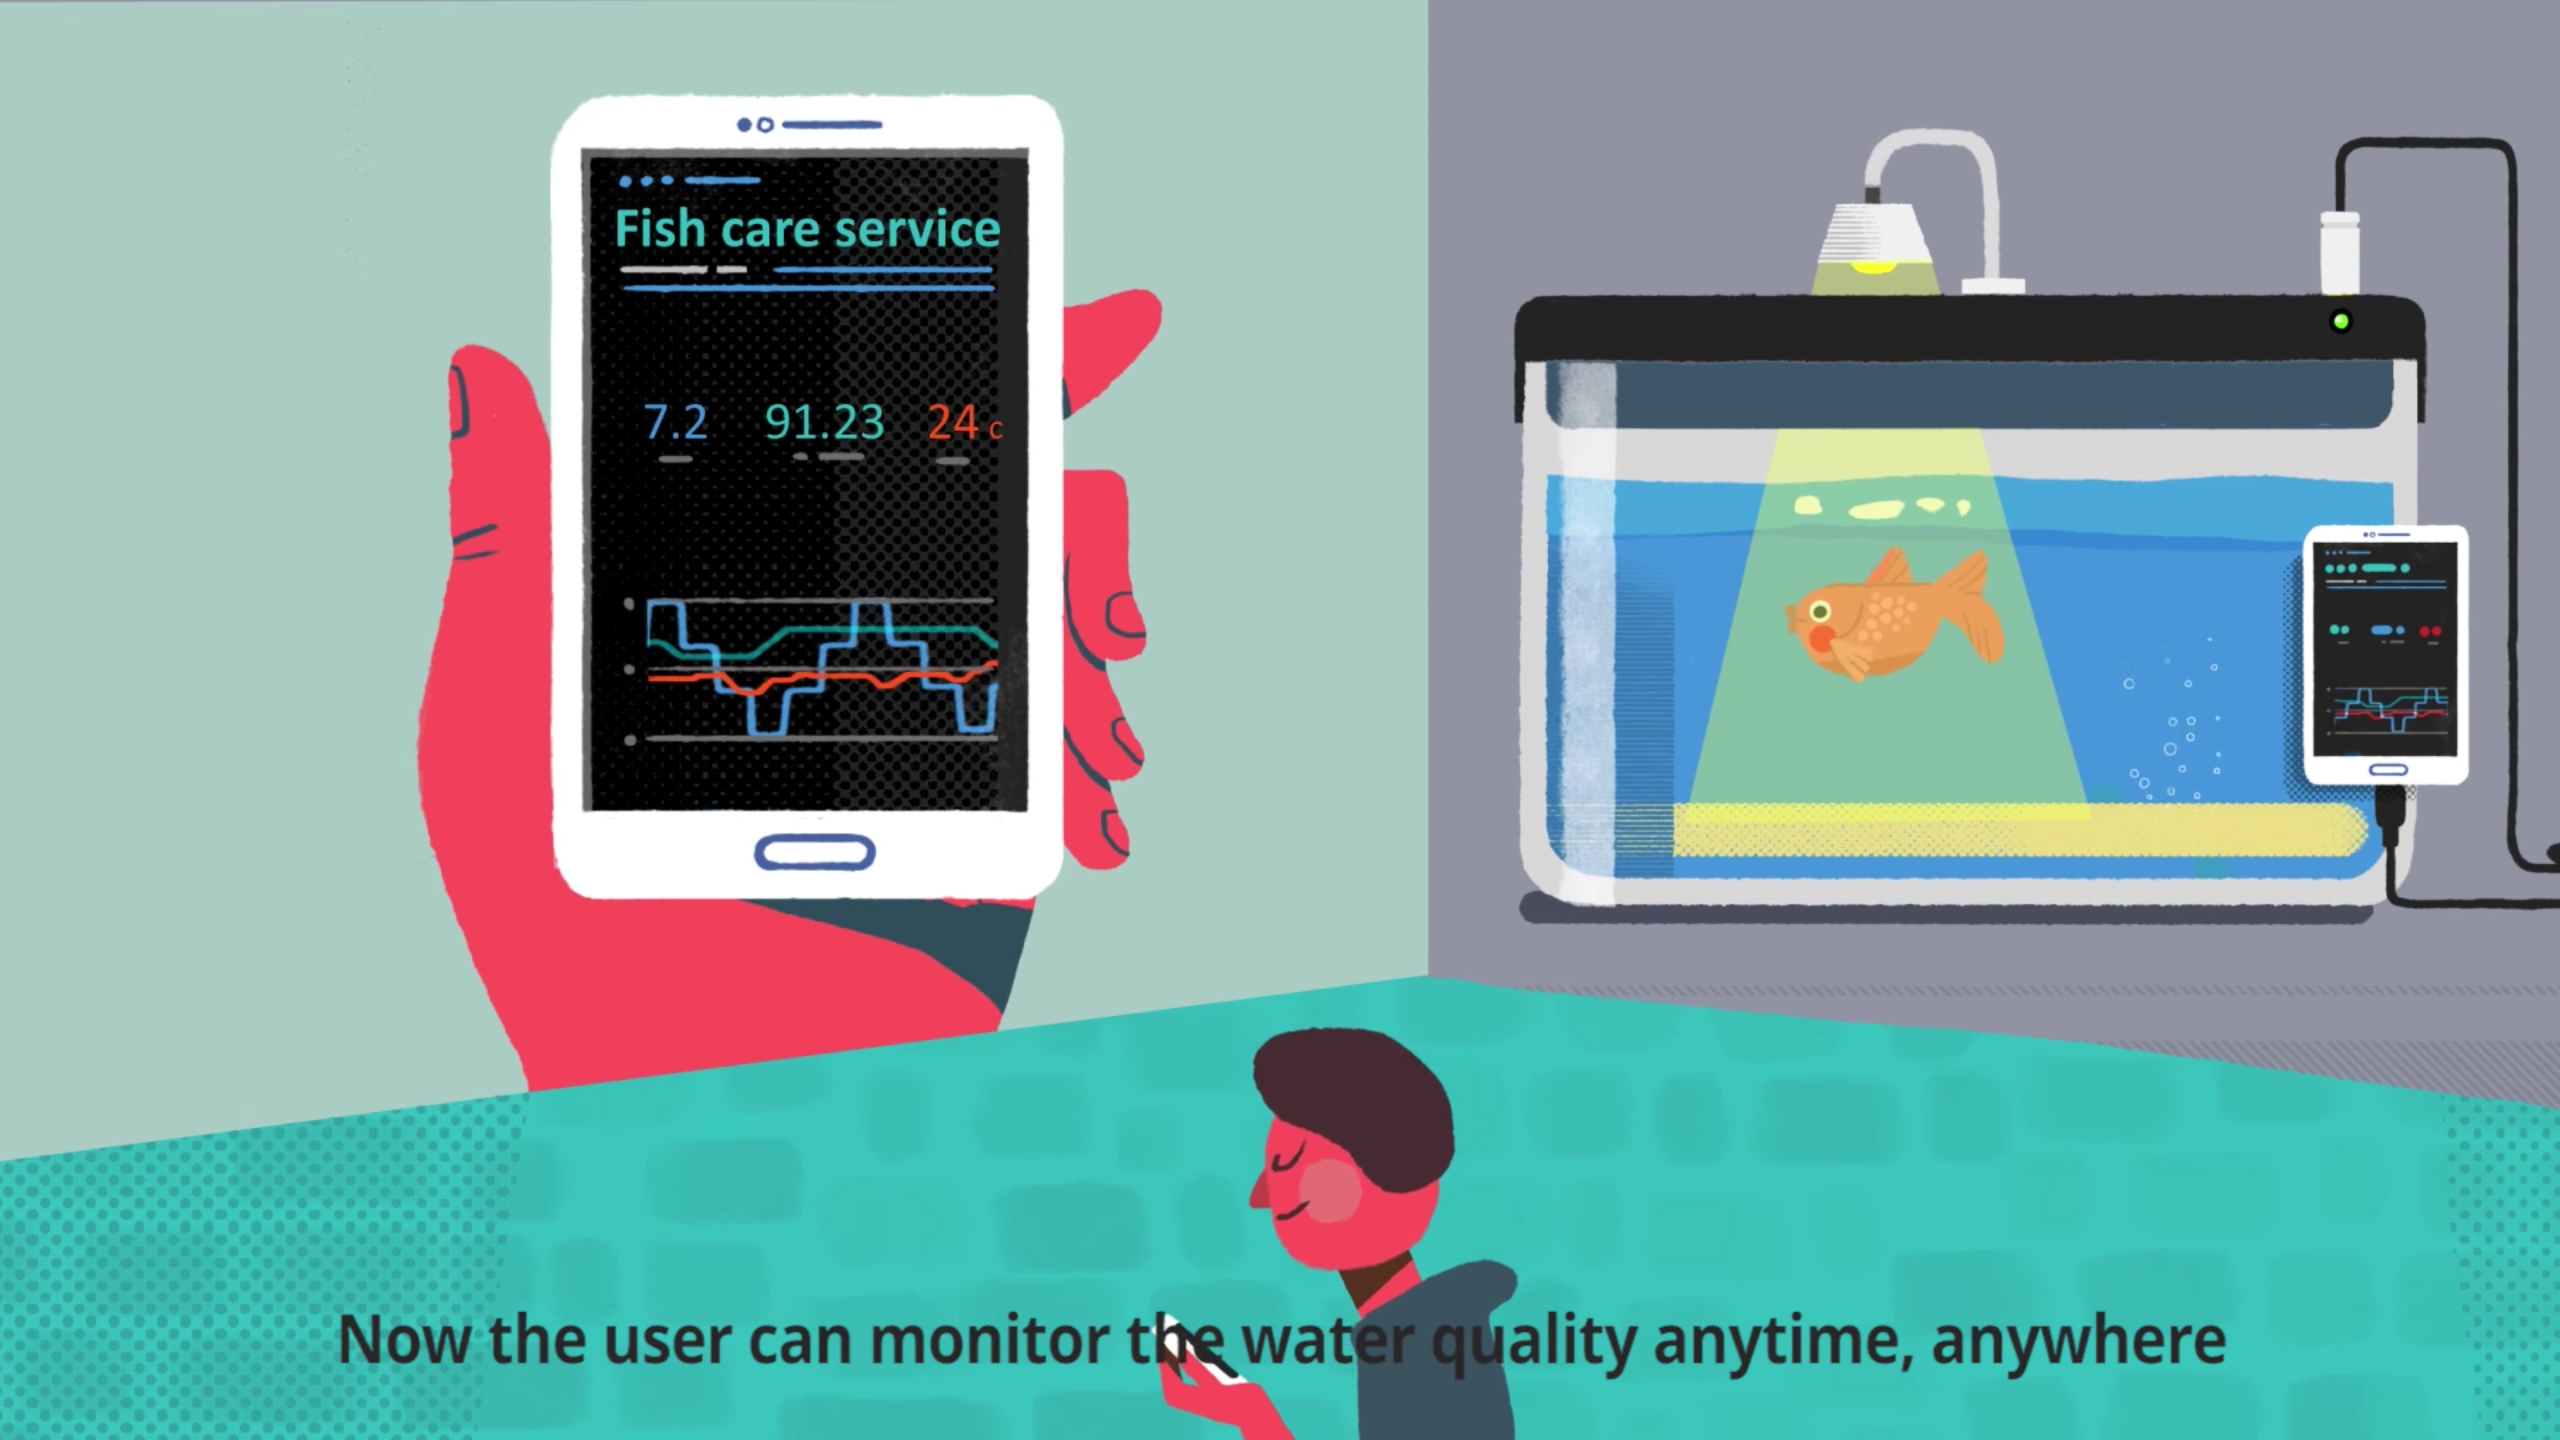 """Image from Samsung Upcycling video, reading """"Now the user can monitor the water quality anytime, anywhere"""""""